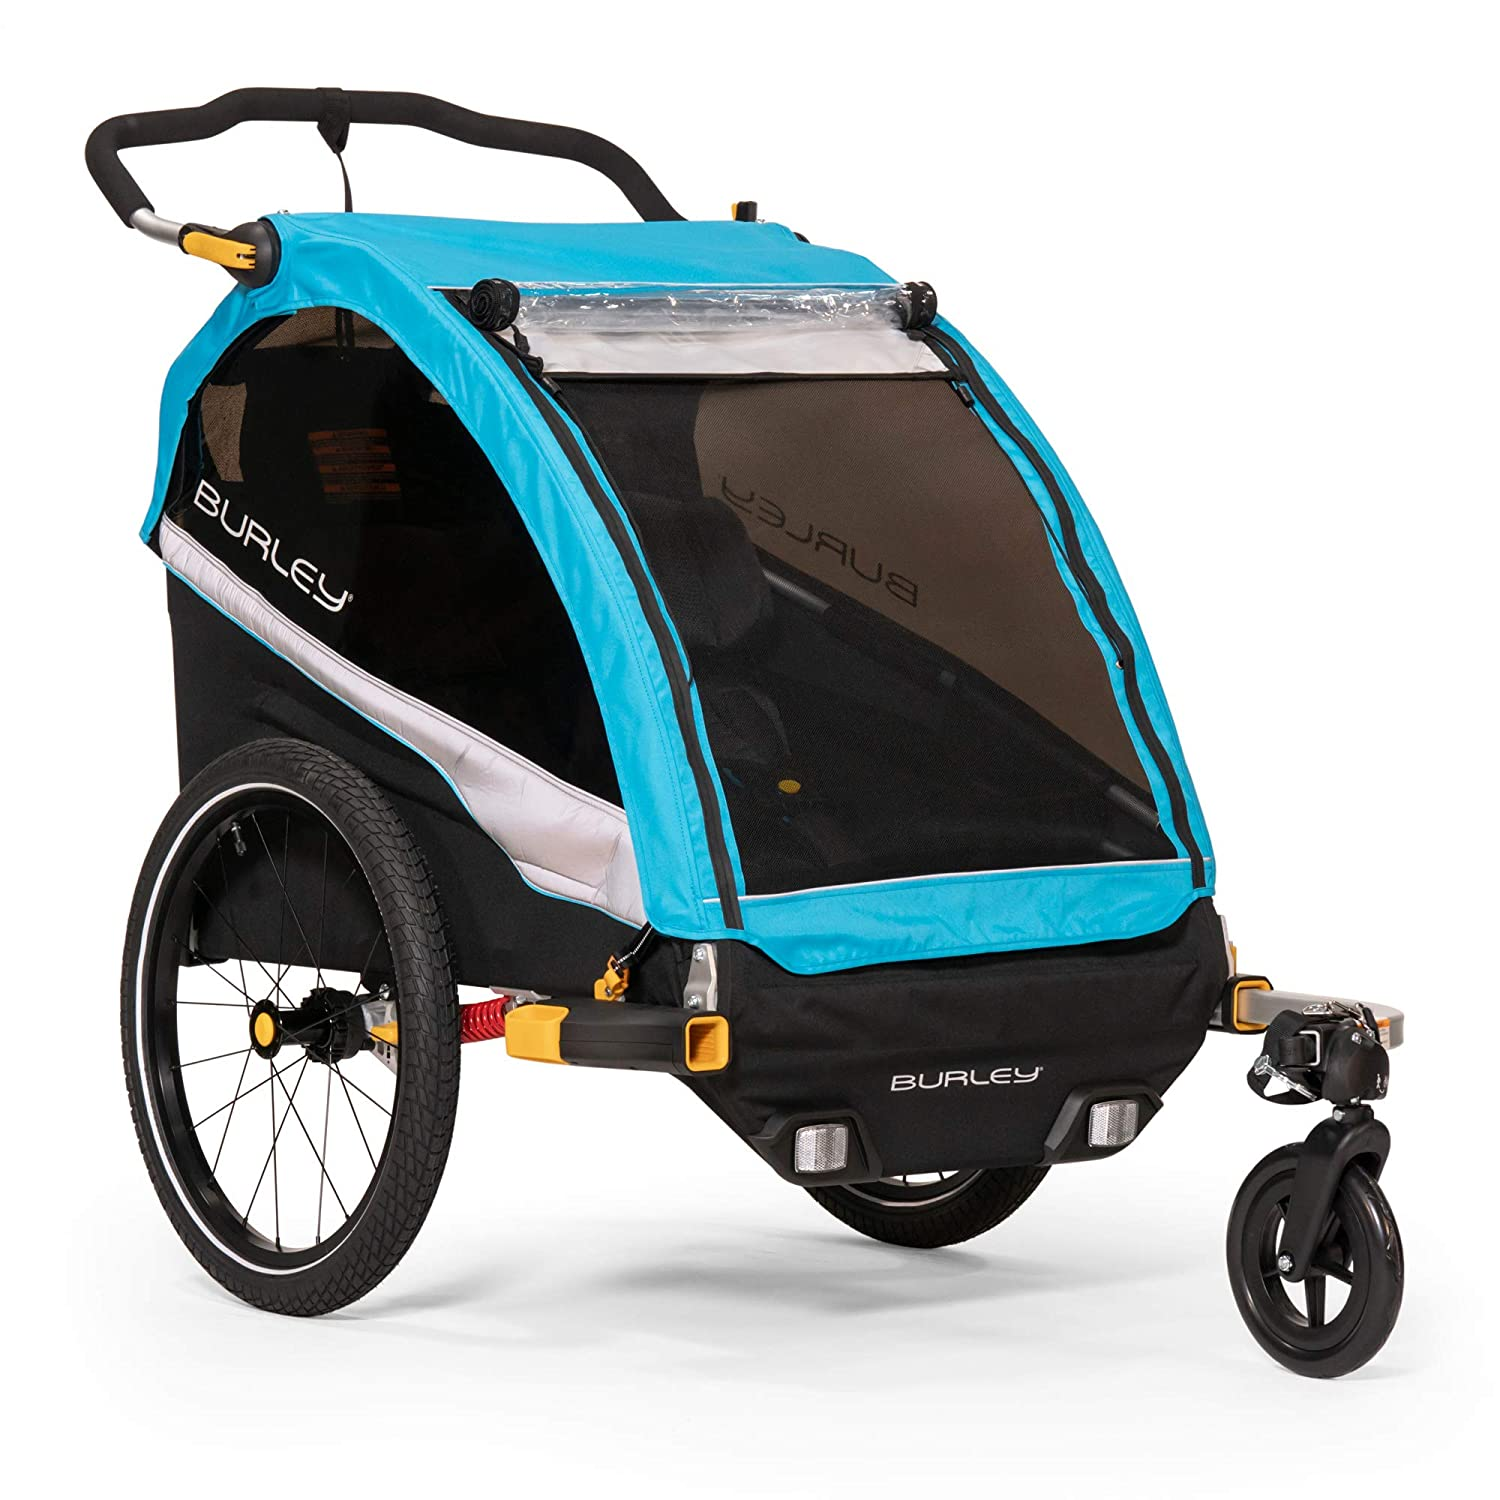 Burley D'Lite X, 2 Seat Kids Bike Trailer & Stroller - Best for All-Terrain